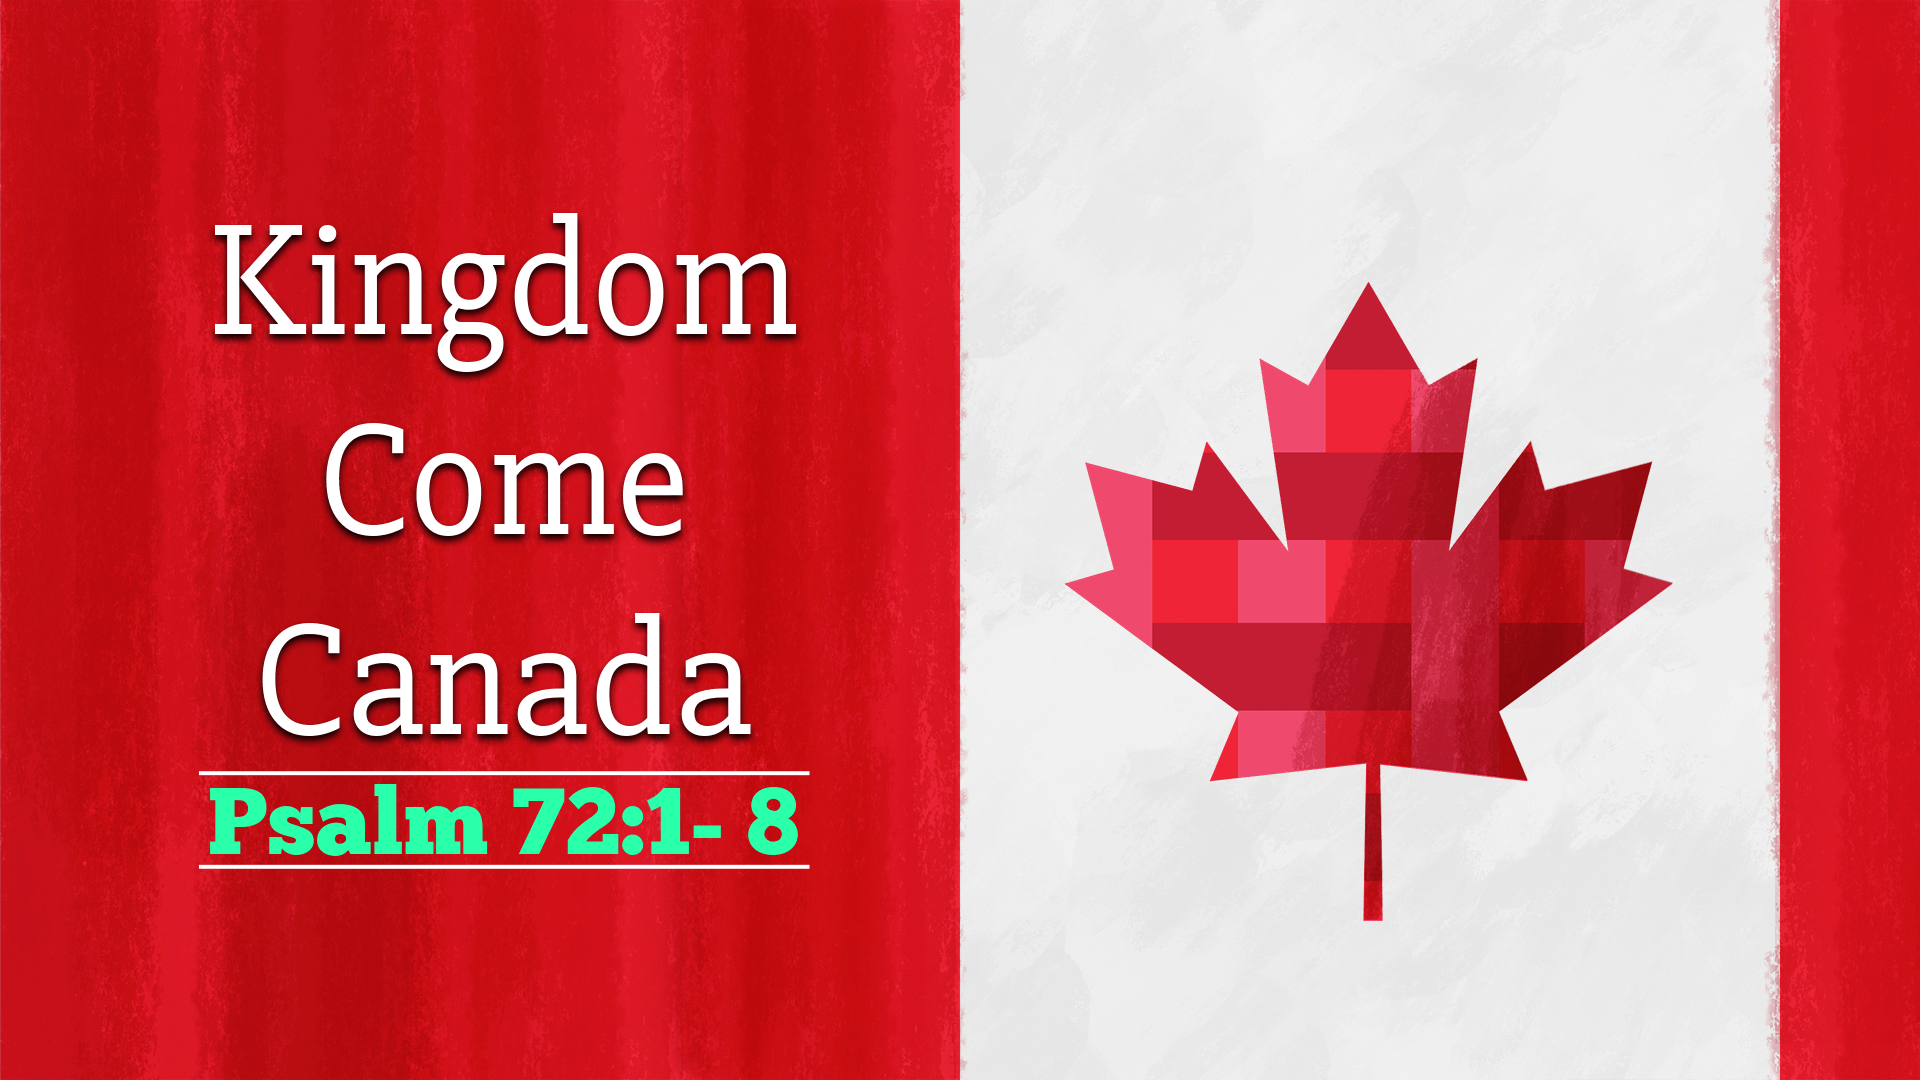 Kingdom Come Canada